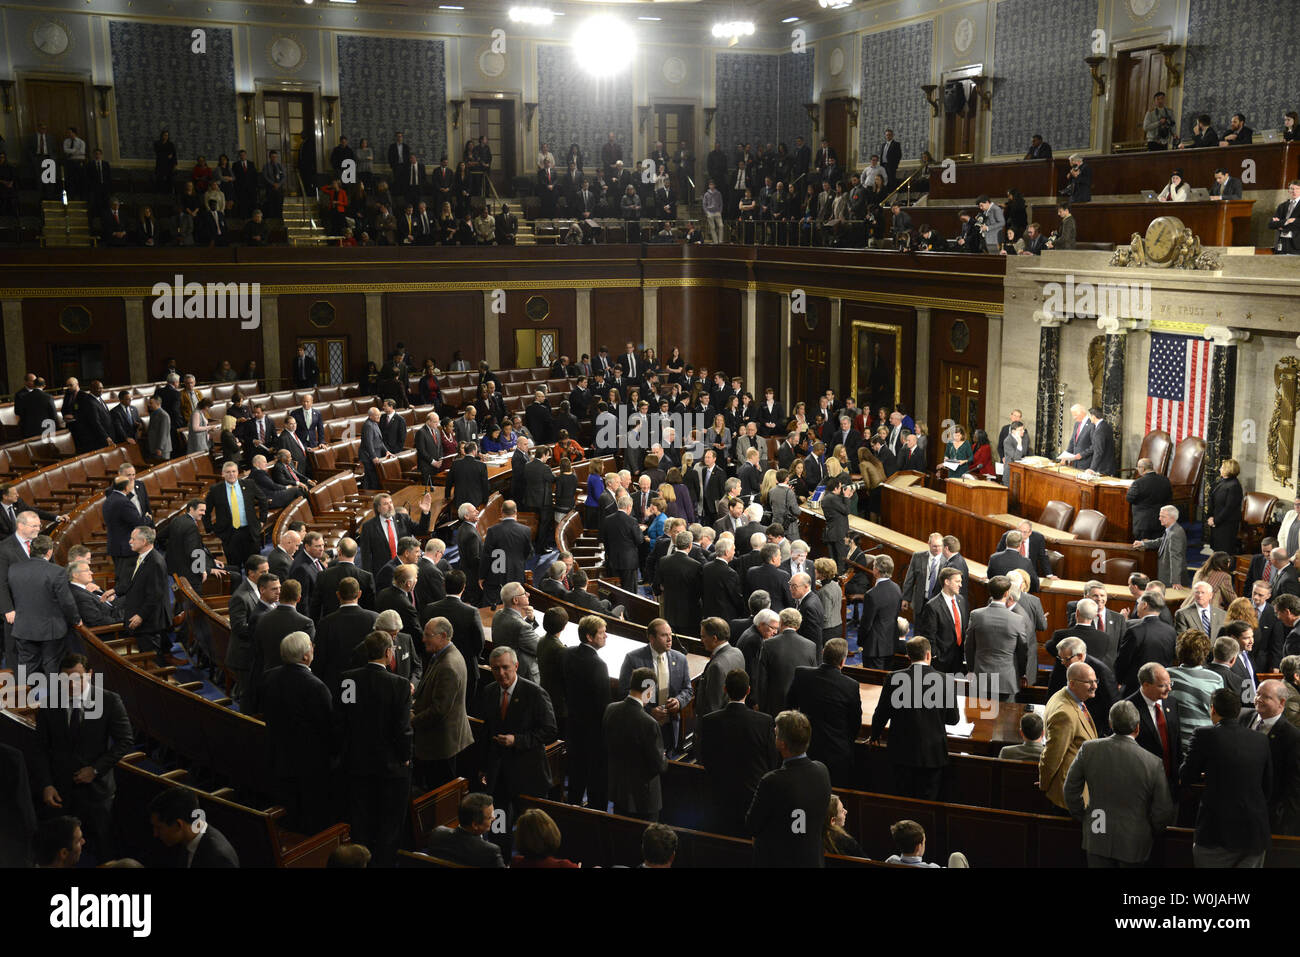 General view of the floor of the House of Representatives during the Joint Session procedure to count and validate the votes of the Electoral College on the floor of the House at the U.S. Capitol, January 6, 2017, in Washington, DC. The procedure, established by the Constitution, finalized Donald J. Trump and Mike Pence as the president and vice president.                 Photo by Mike Theiler/UPI - Stock Image